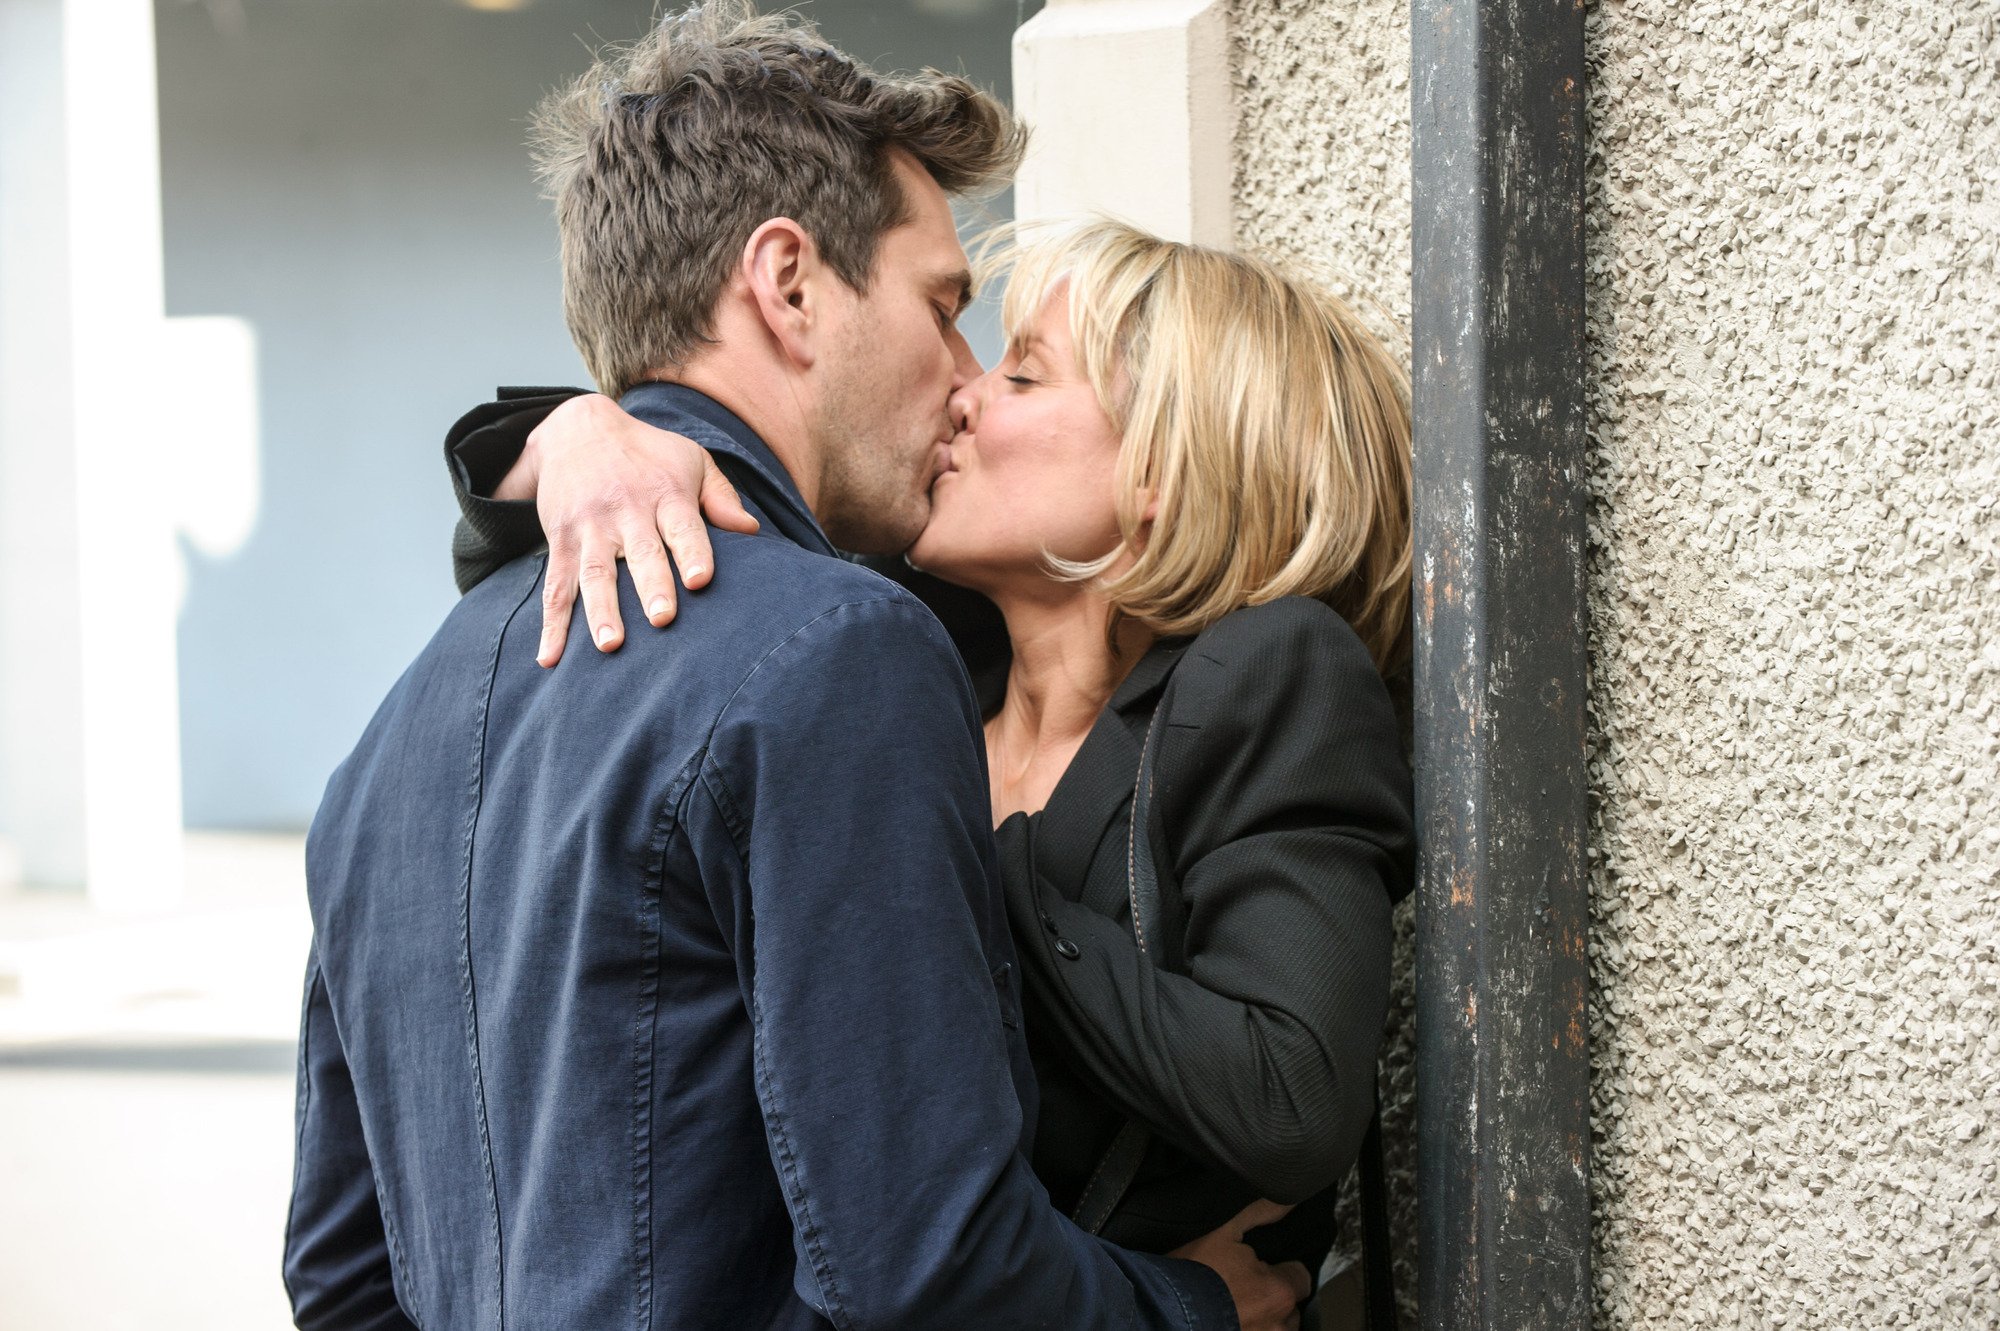 Casualty Reveal Rita And Iain Hook Up News Casualty